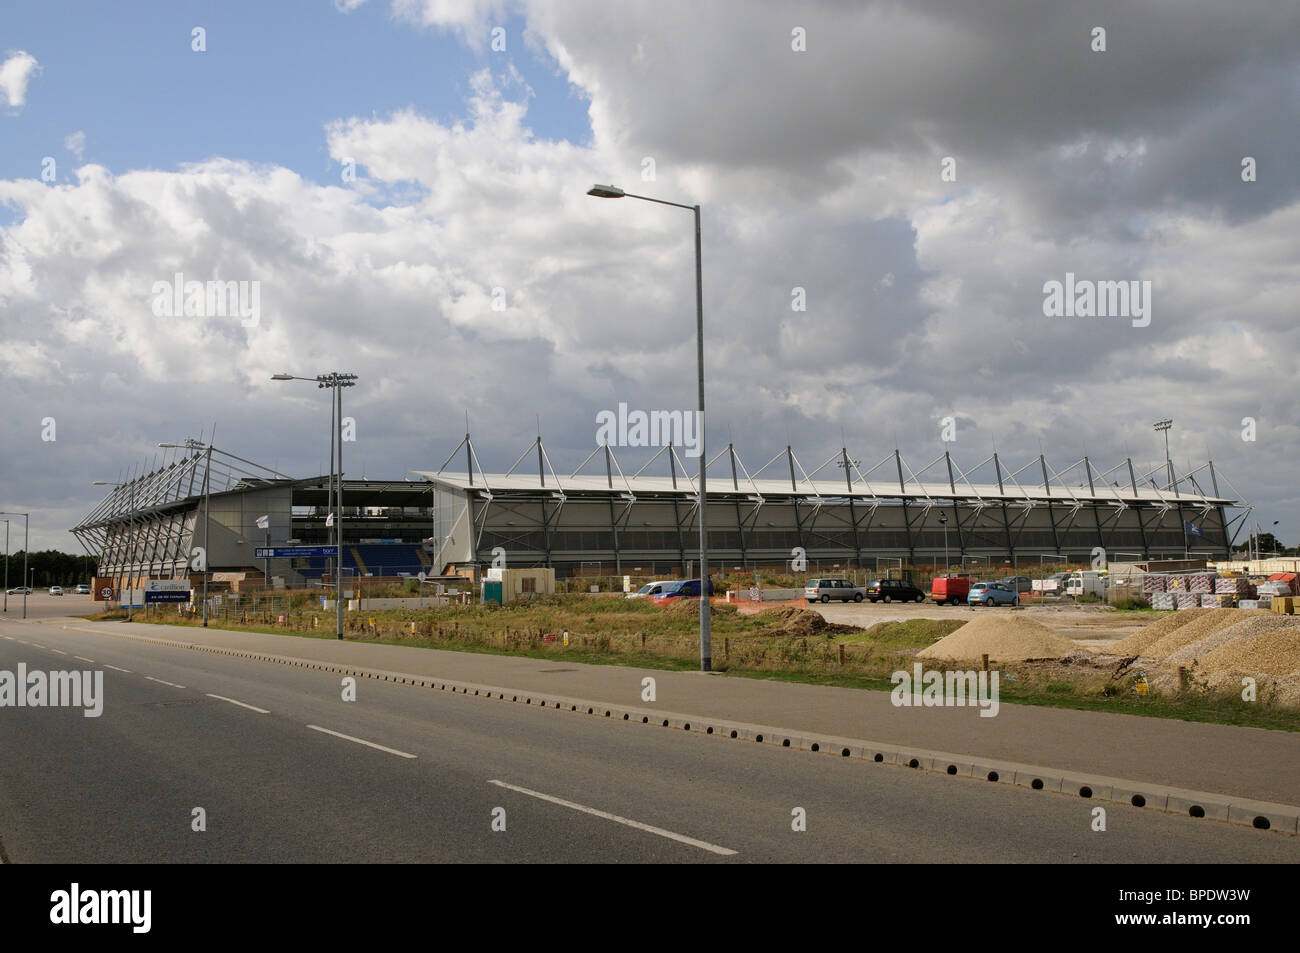 Weston Homes Community Stadium in Colchester Essex England UK Home of Colchester United FC - Stock Image